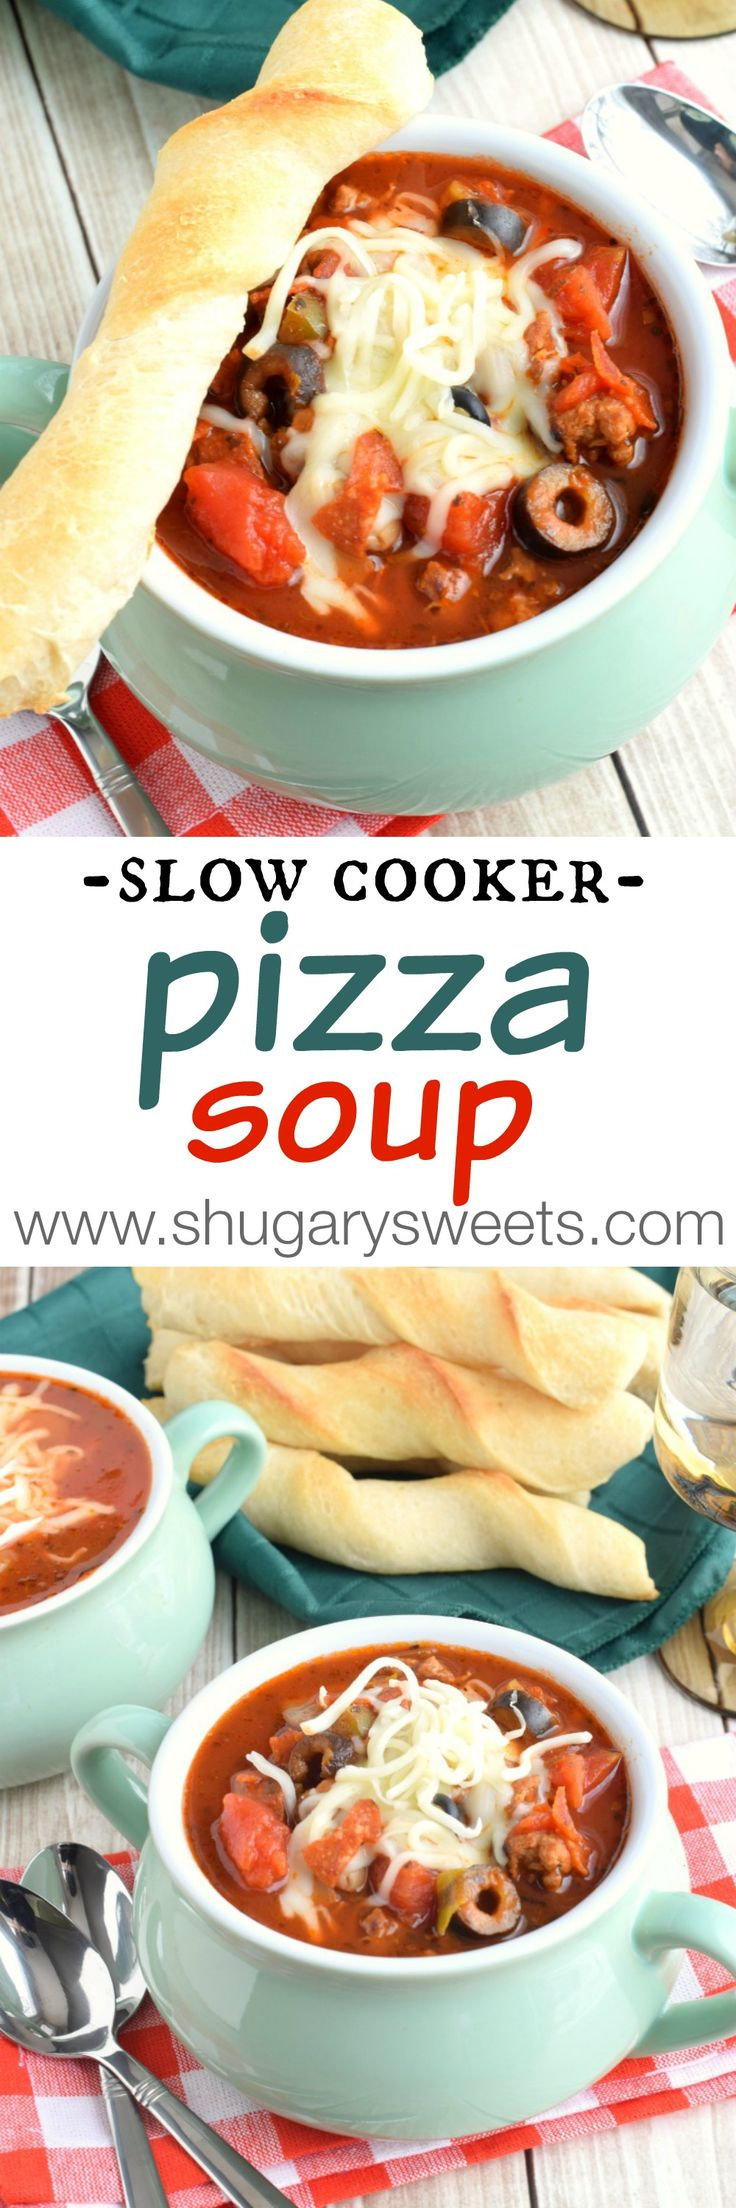 Slow Cooker Pizza Soup: it's delicious comfort food made in your crockpot. Add some breadstick twists for a yummy side!